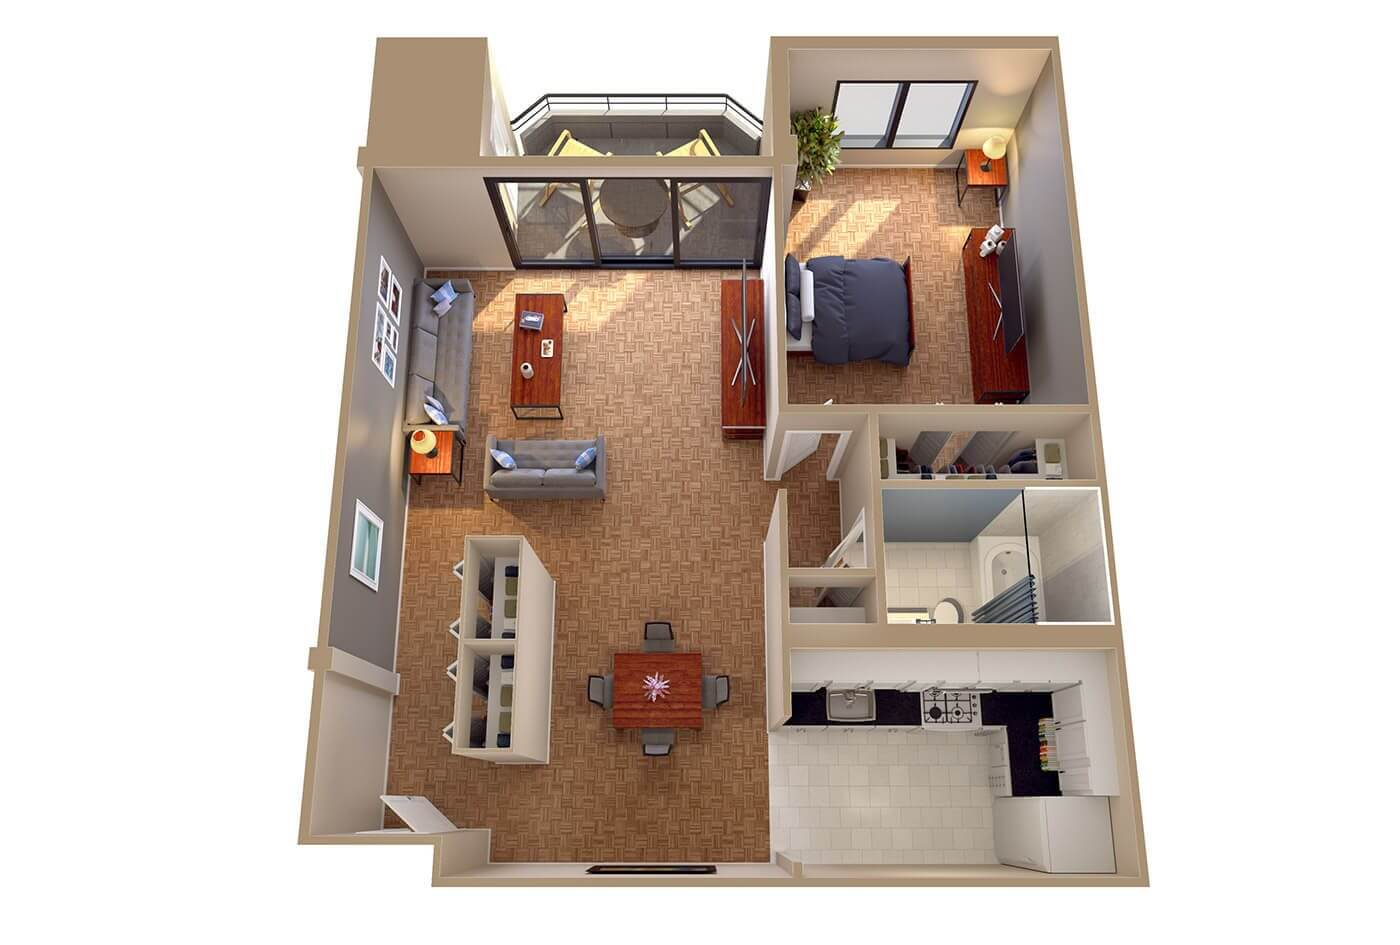 1 bedroom apartment. The Wisconsin  1 Bedroom Apartment 3D Floor Plans Ambassador Apartments Columbia Plaza